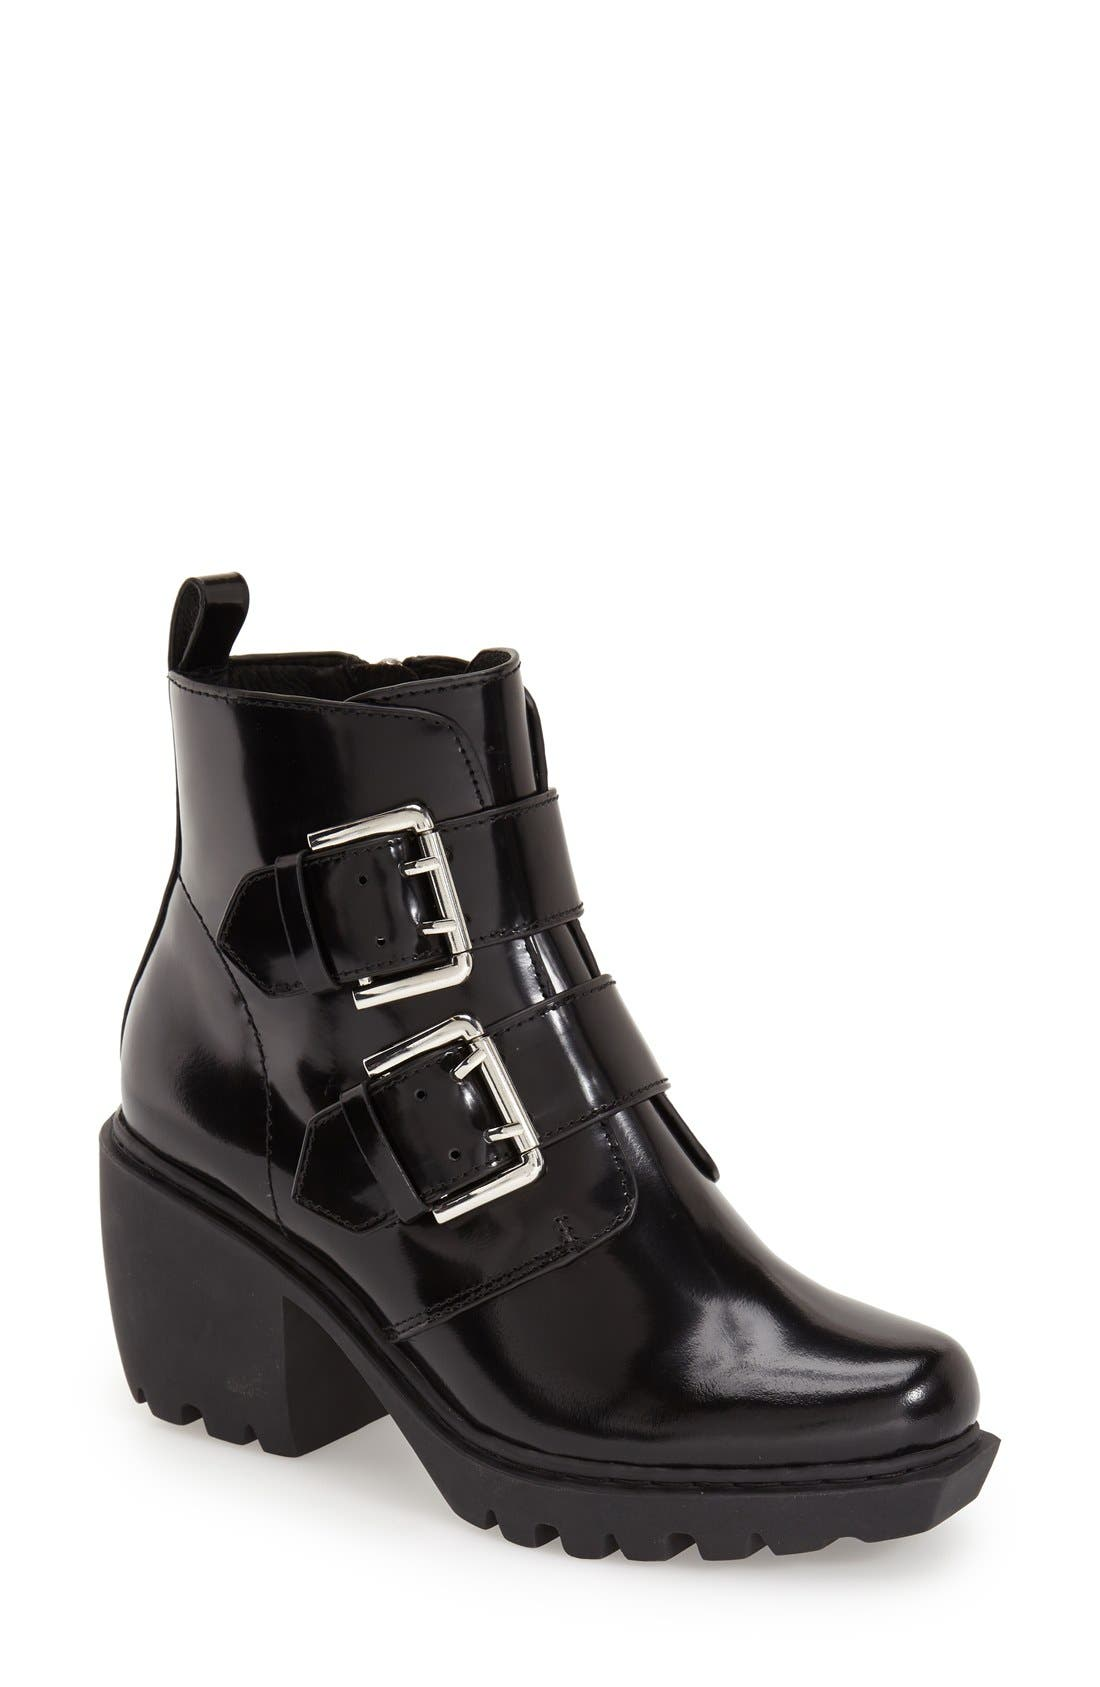 Alternate Image 1 Selected - Opening Ceremony 'Grunge' Double Buckle Bootie